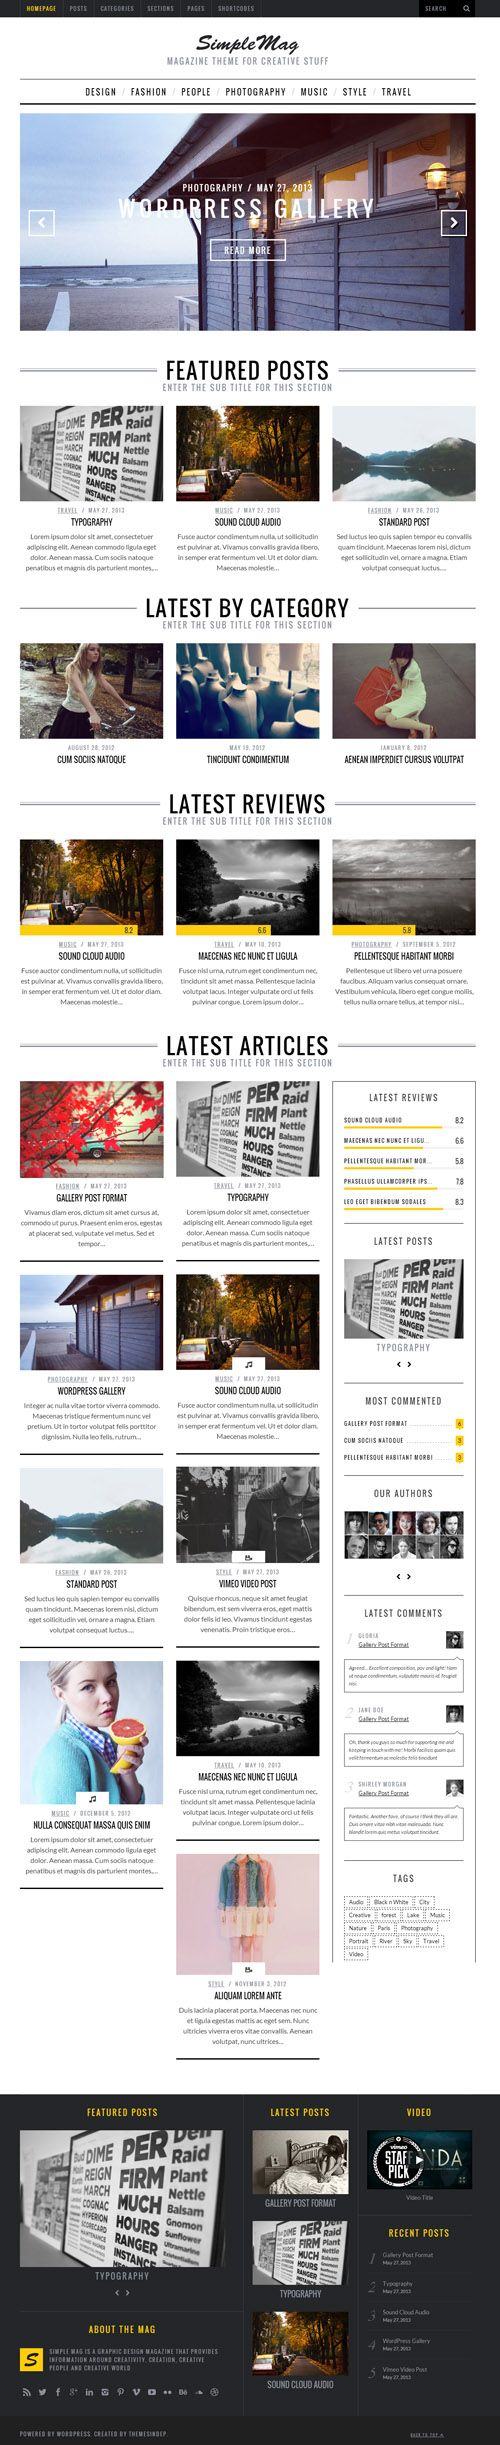 Best 25 Premium Wordpress Themes Ideas On Pinterest Wordpress